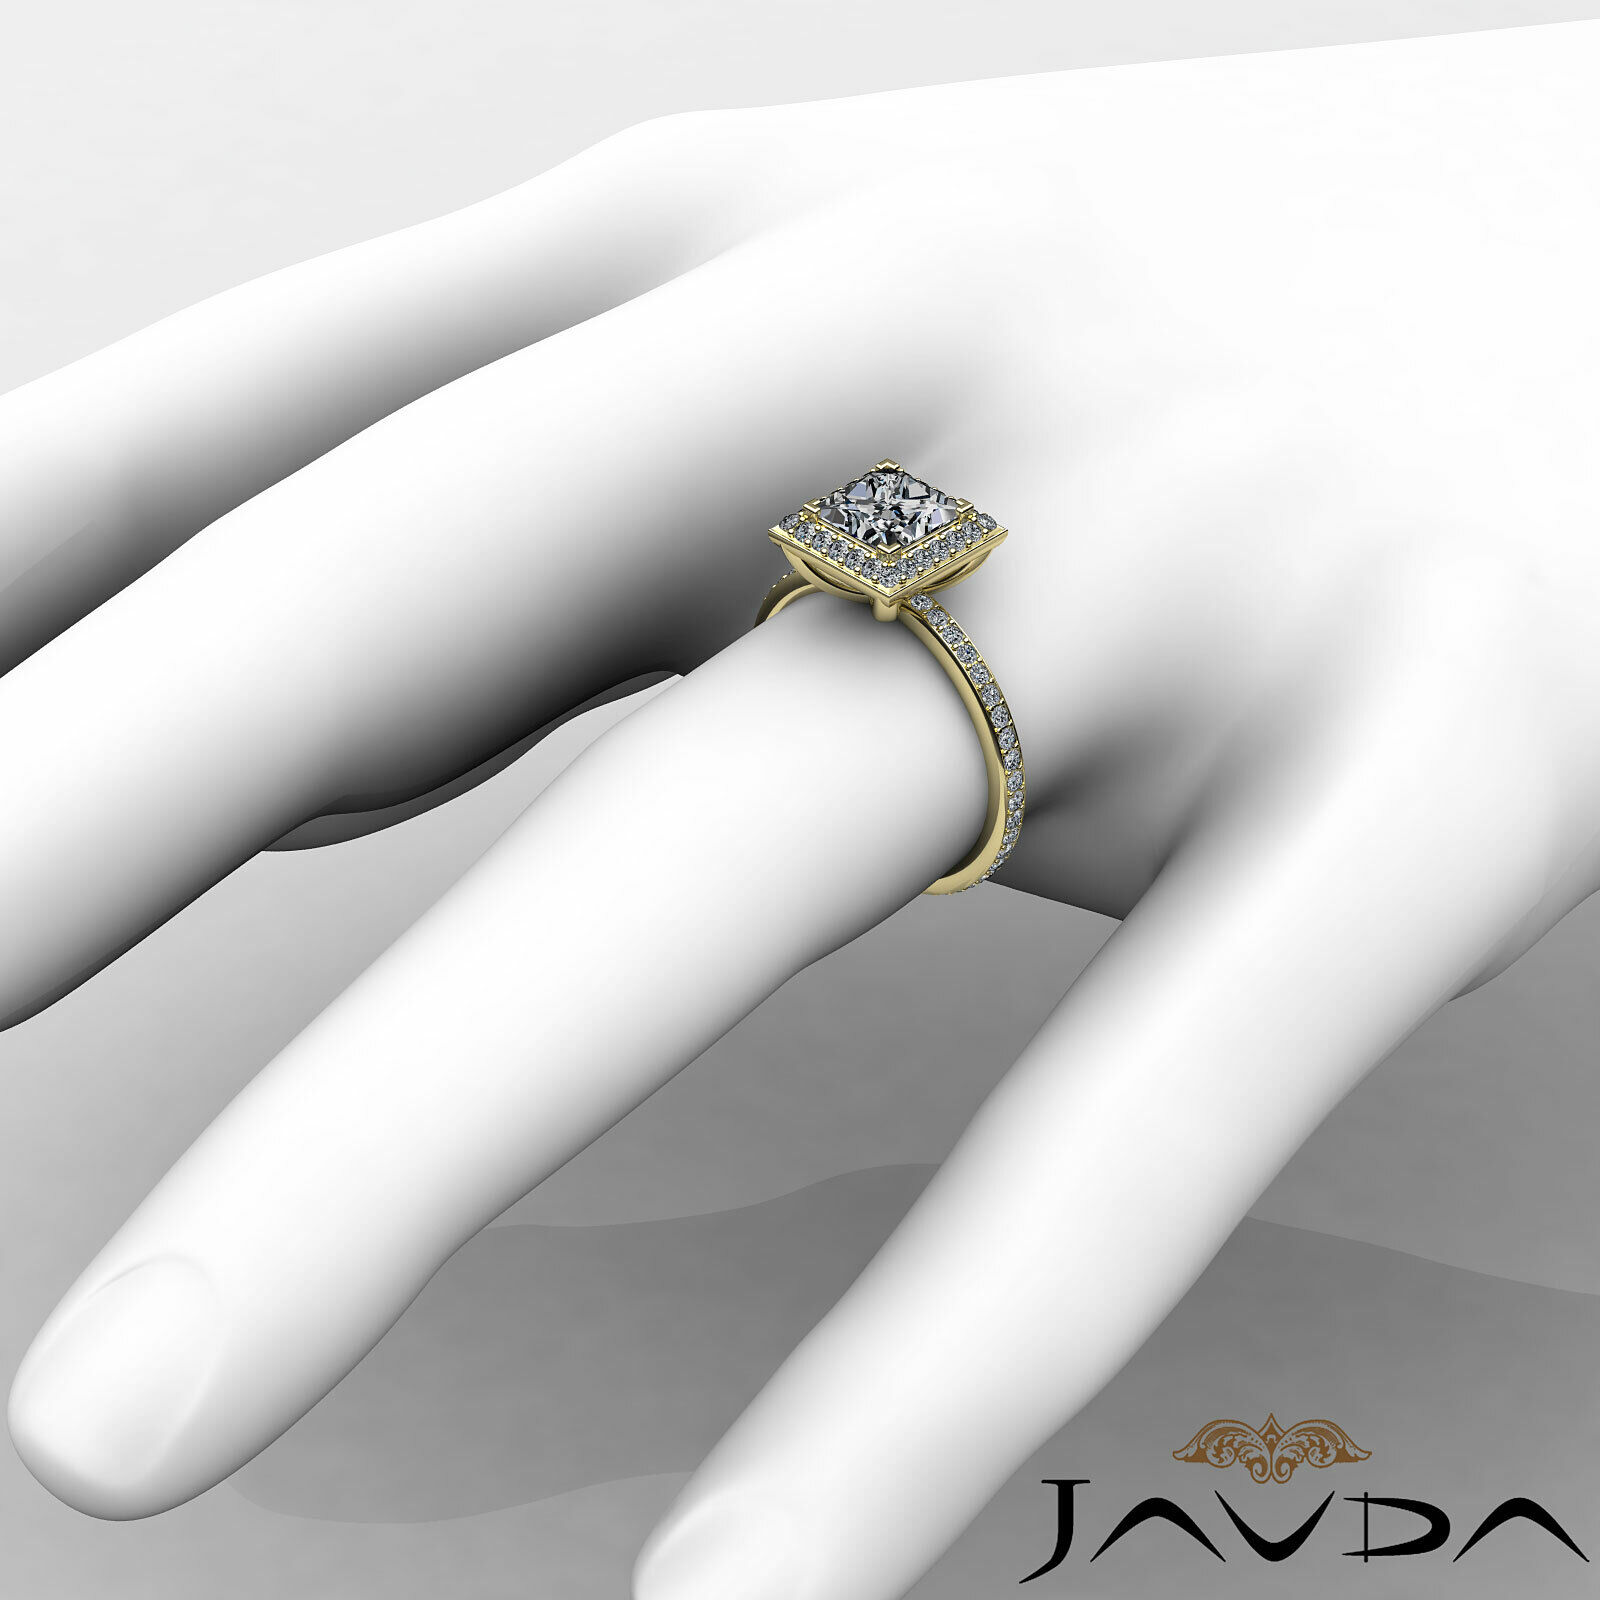 Halo Pave Set Princess Cut Diamond Engagement Ring GIA G Color VS1 Clarity 2.5Ct 10